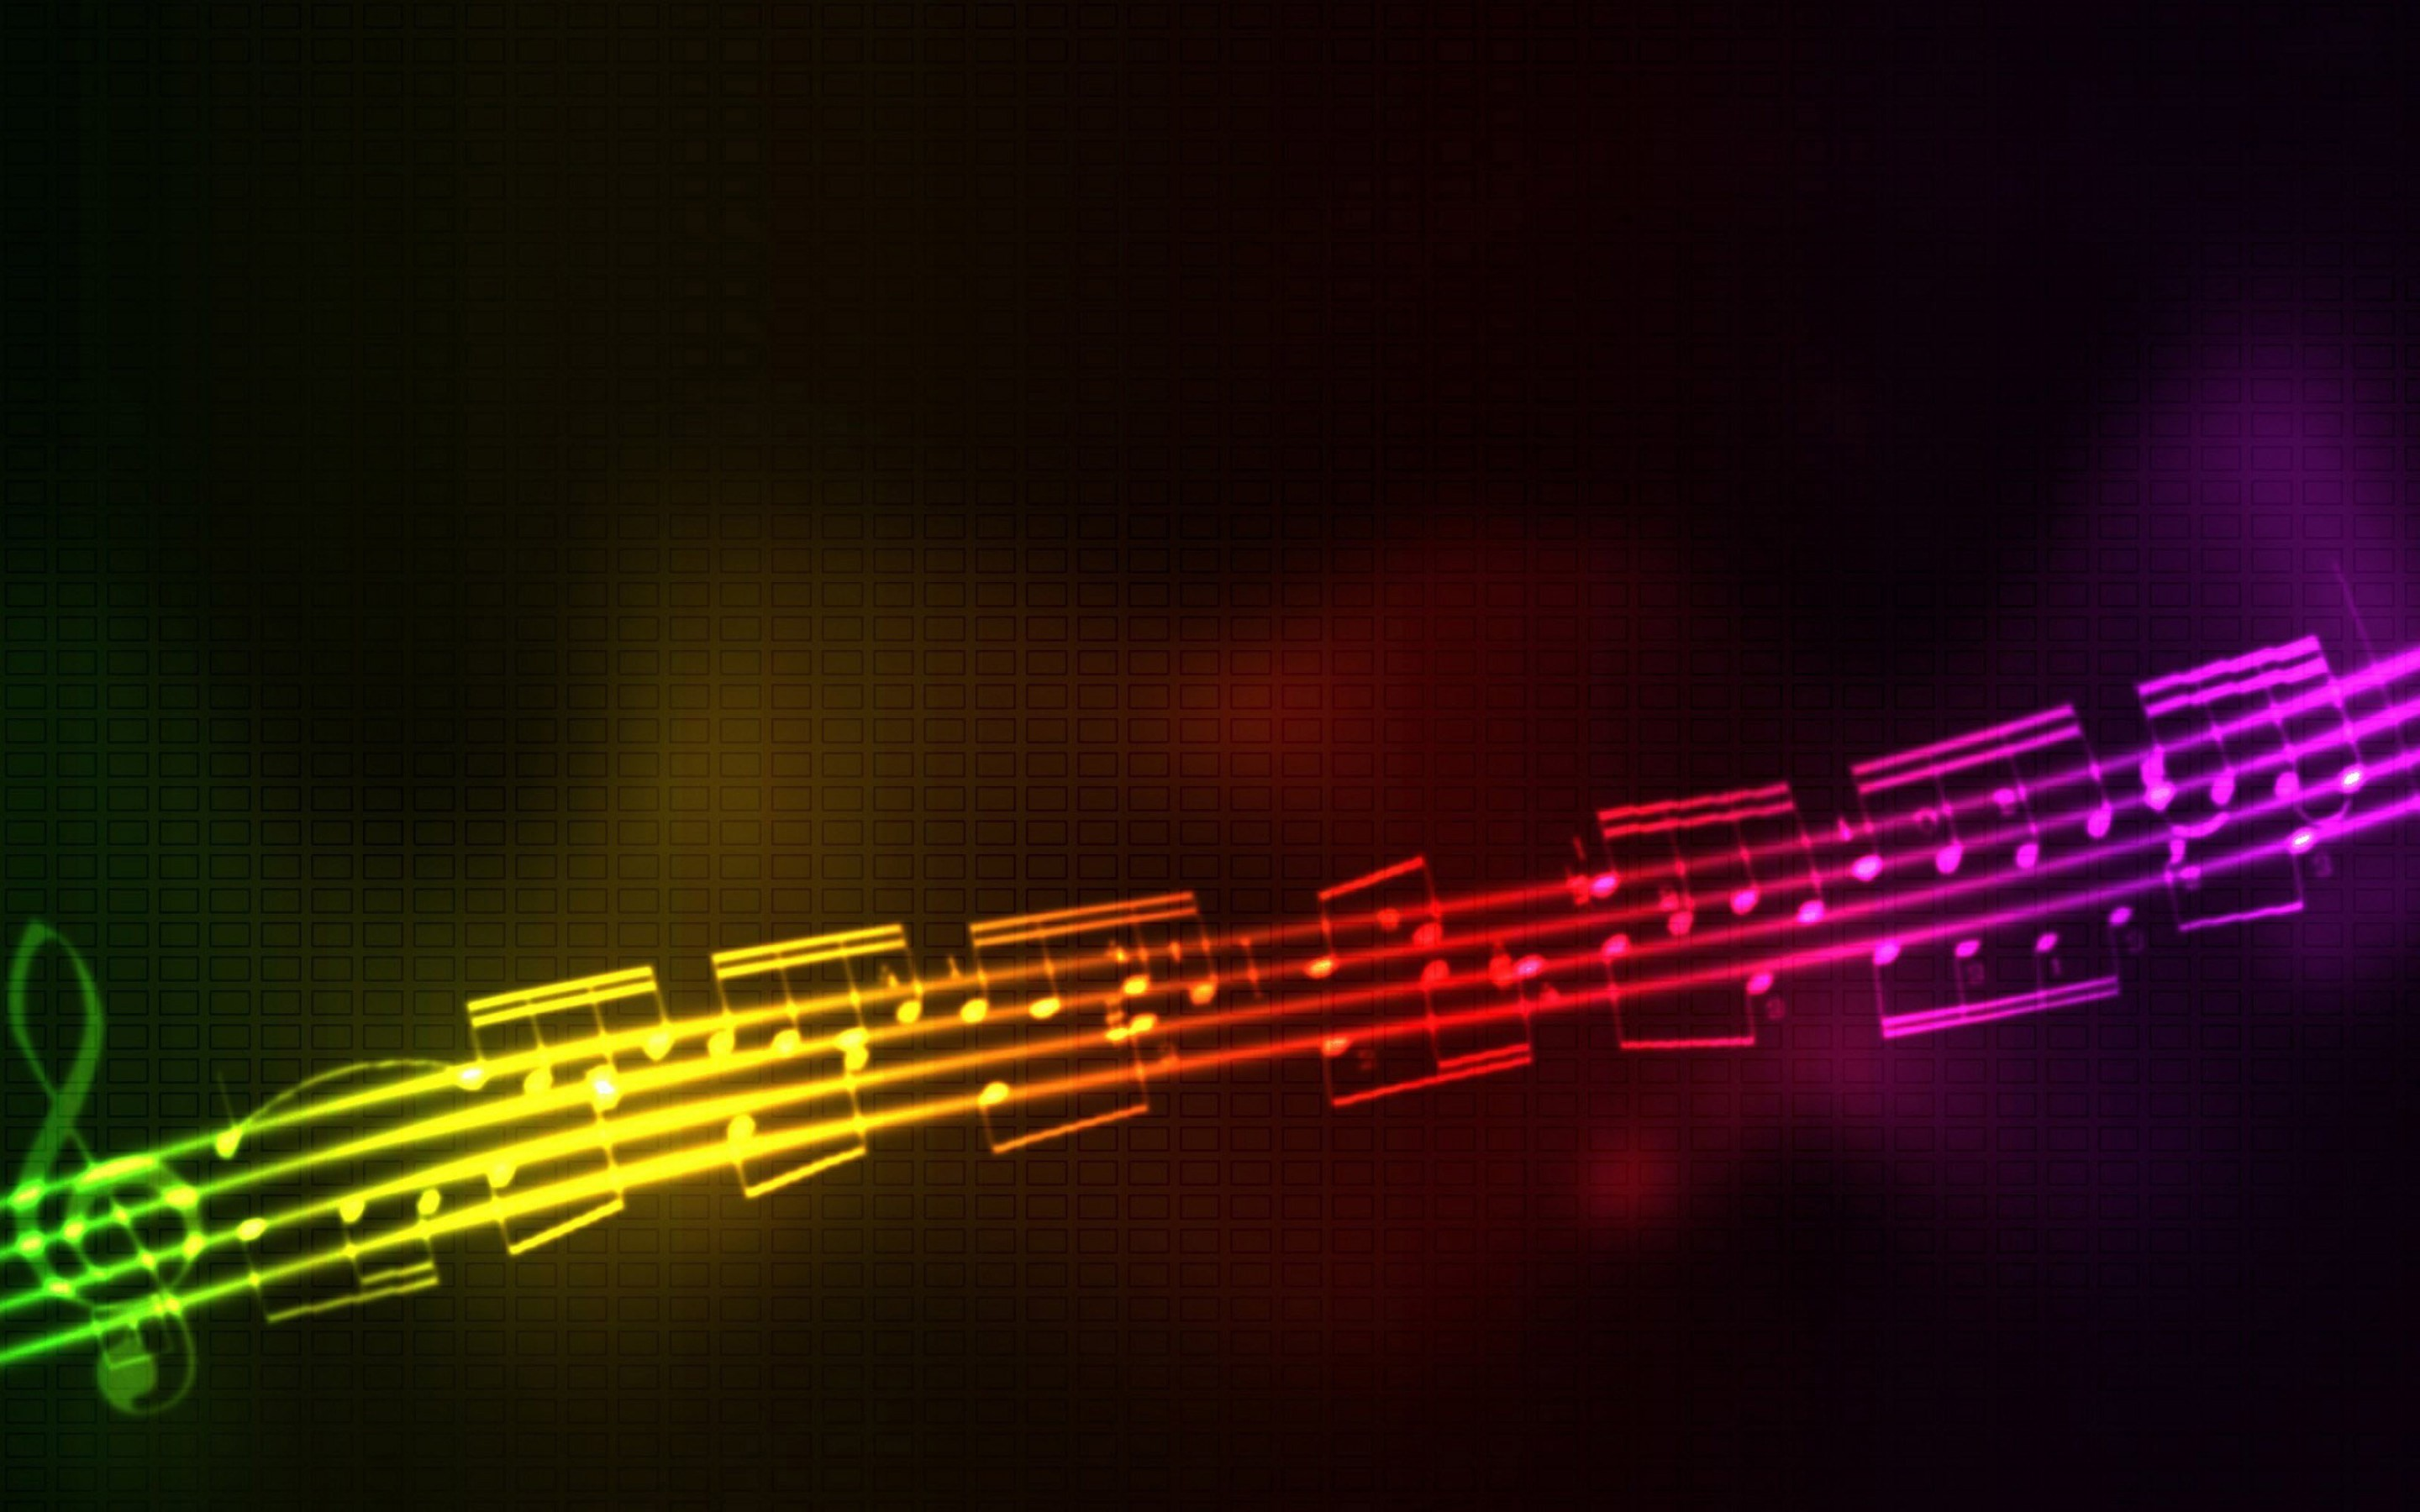 free download music wallpaper backgrounds